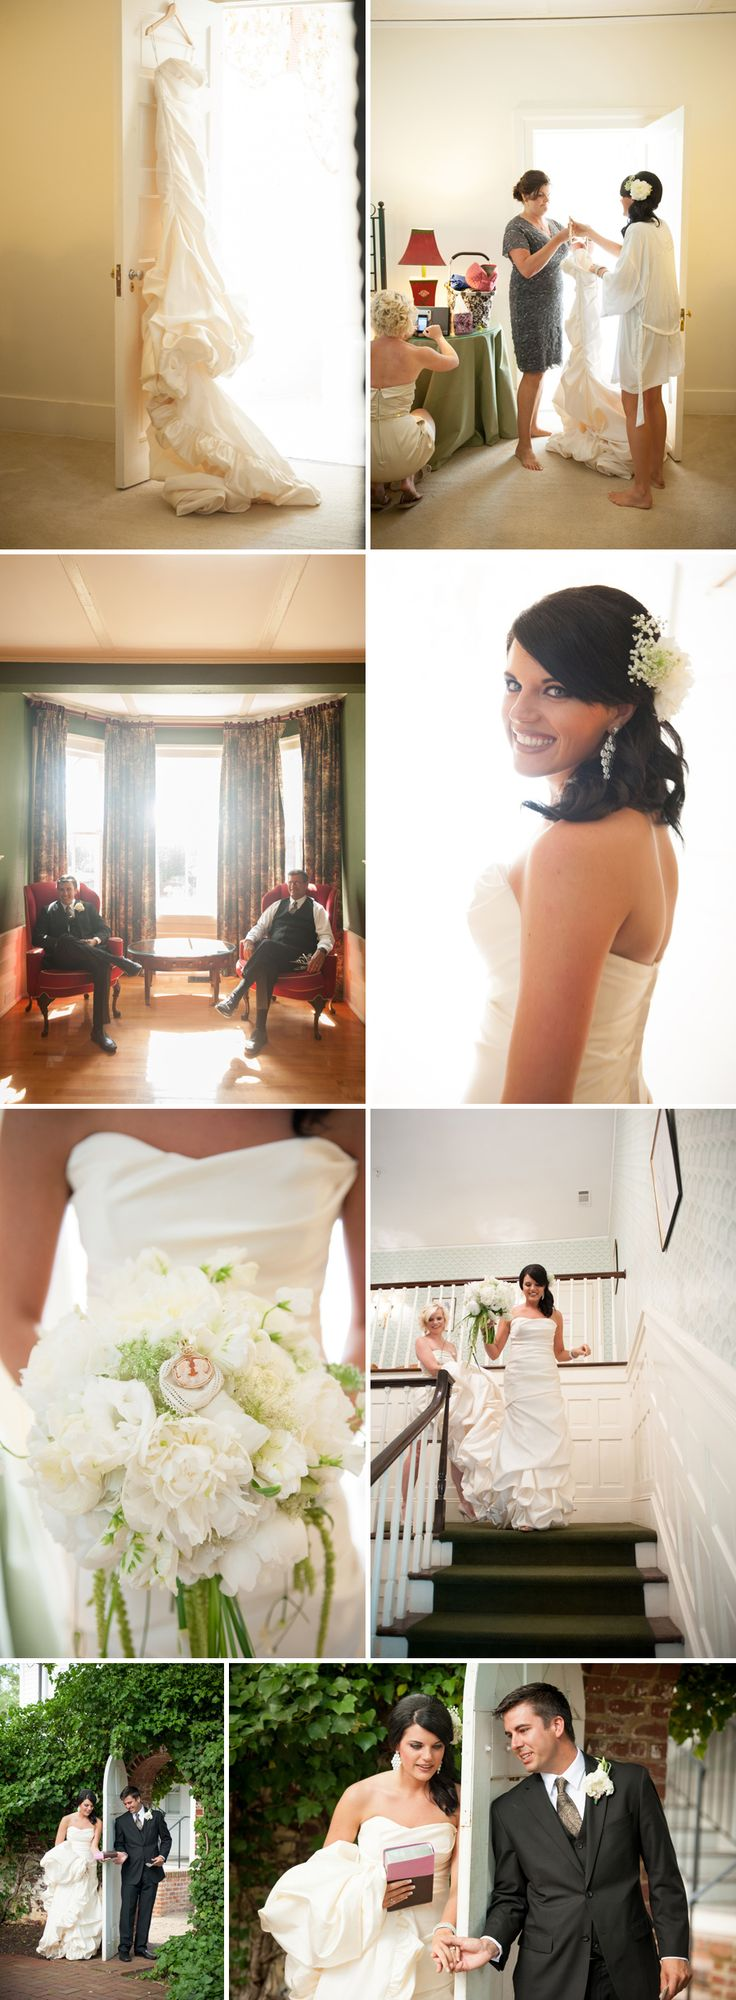 Madison and Charles Wedding at Hopeland Gardens